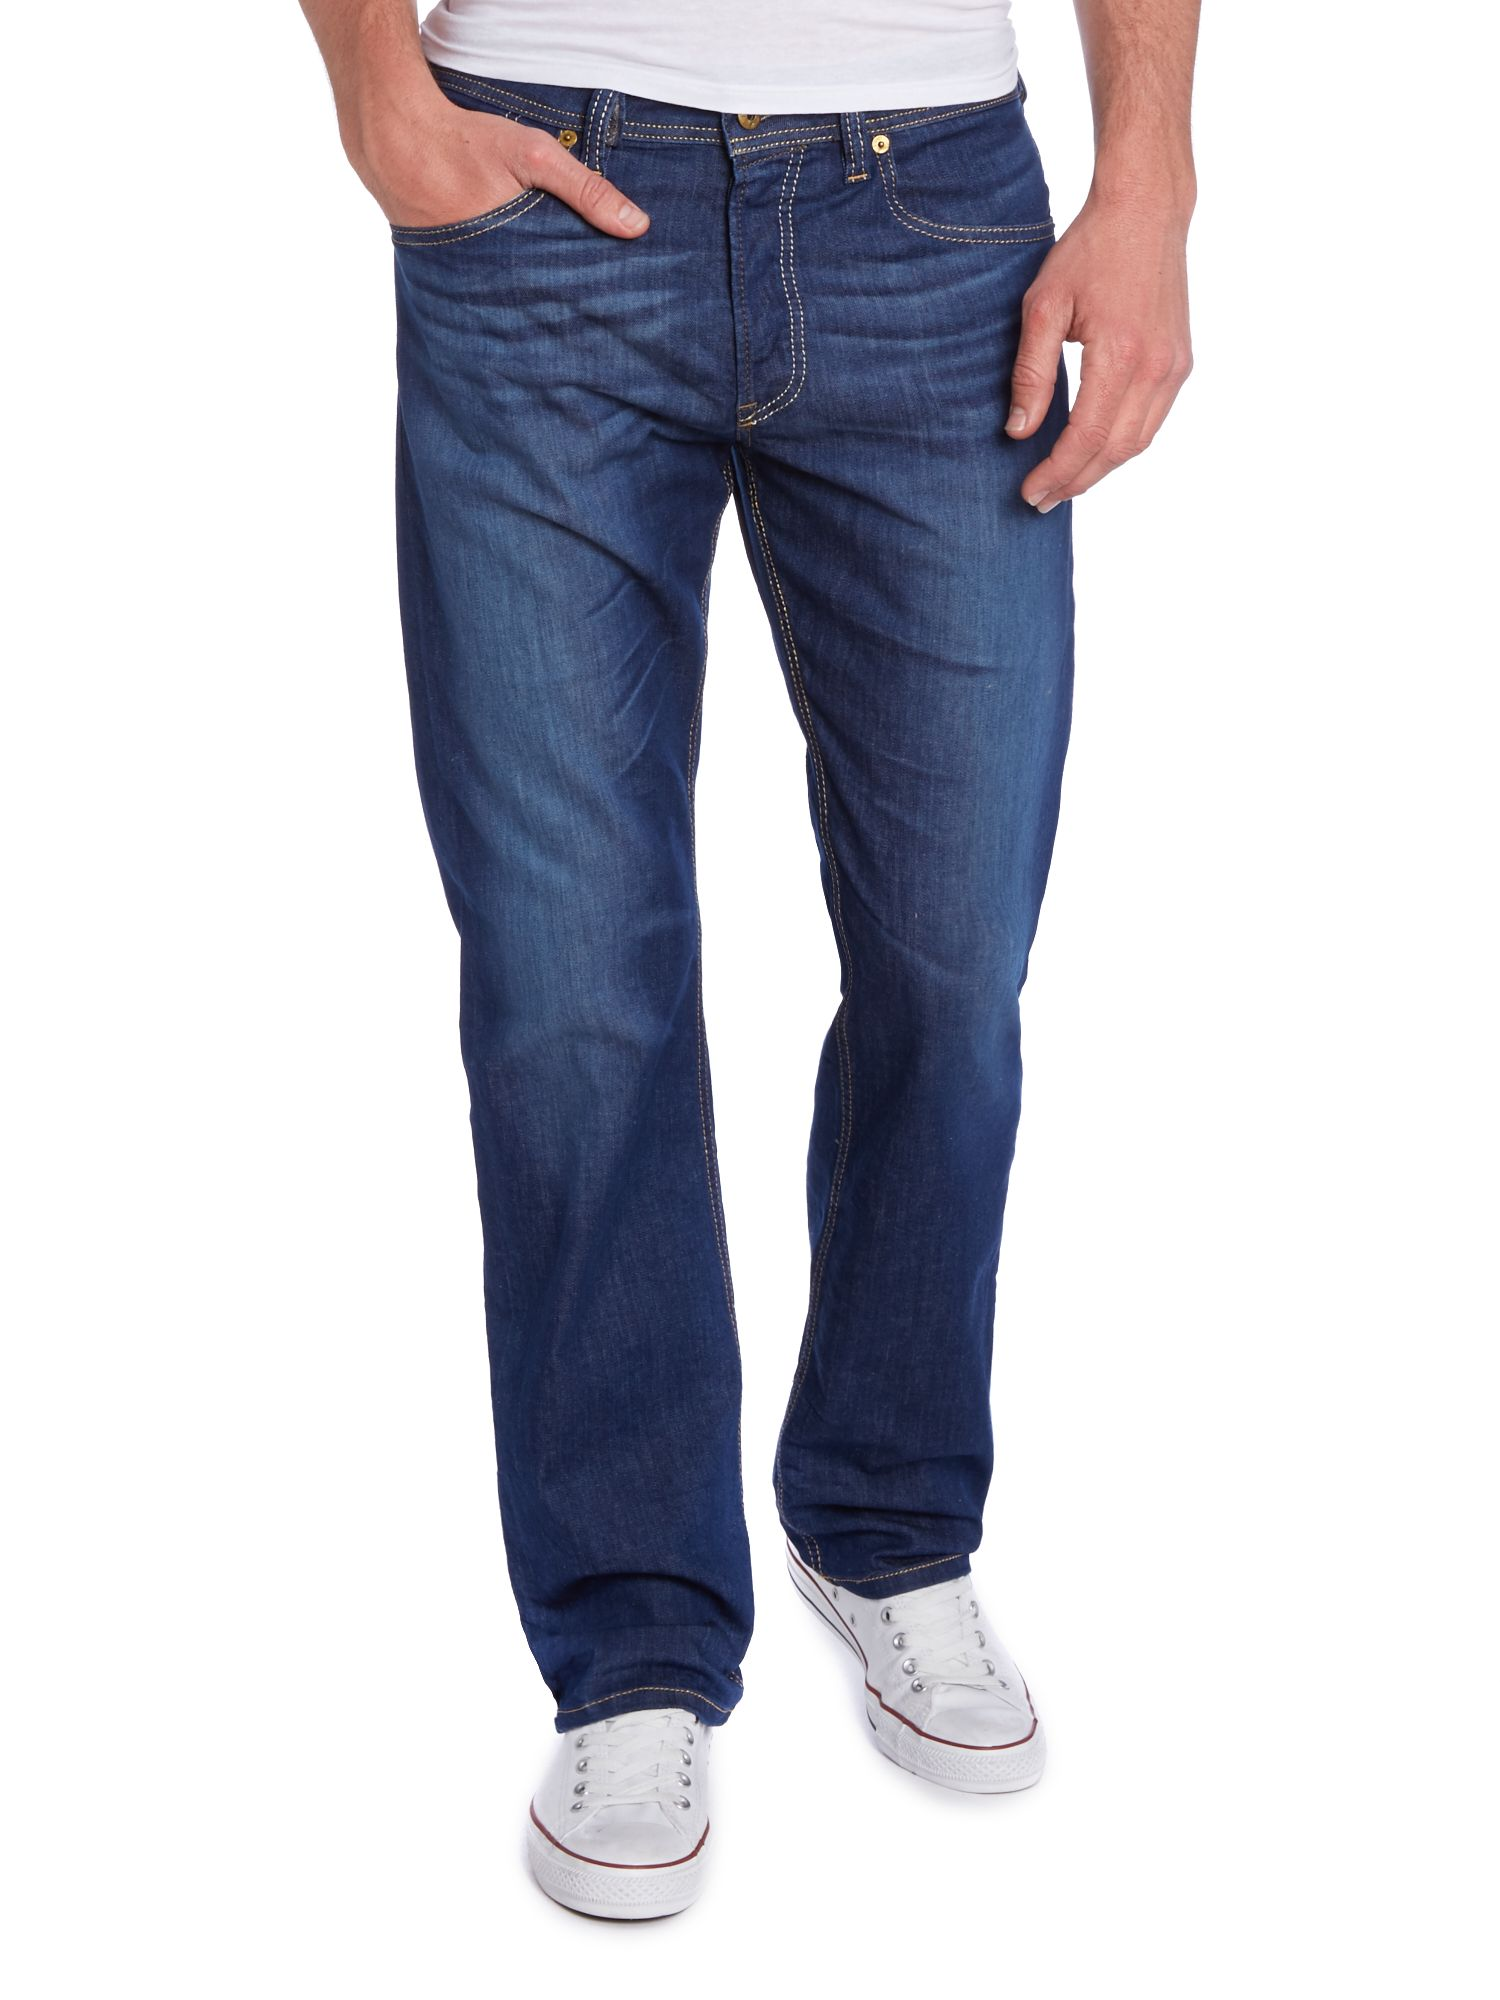 Larkee relaxed straight leg jeans